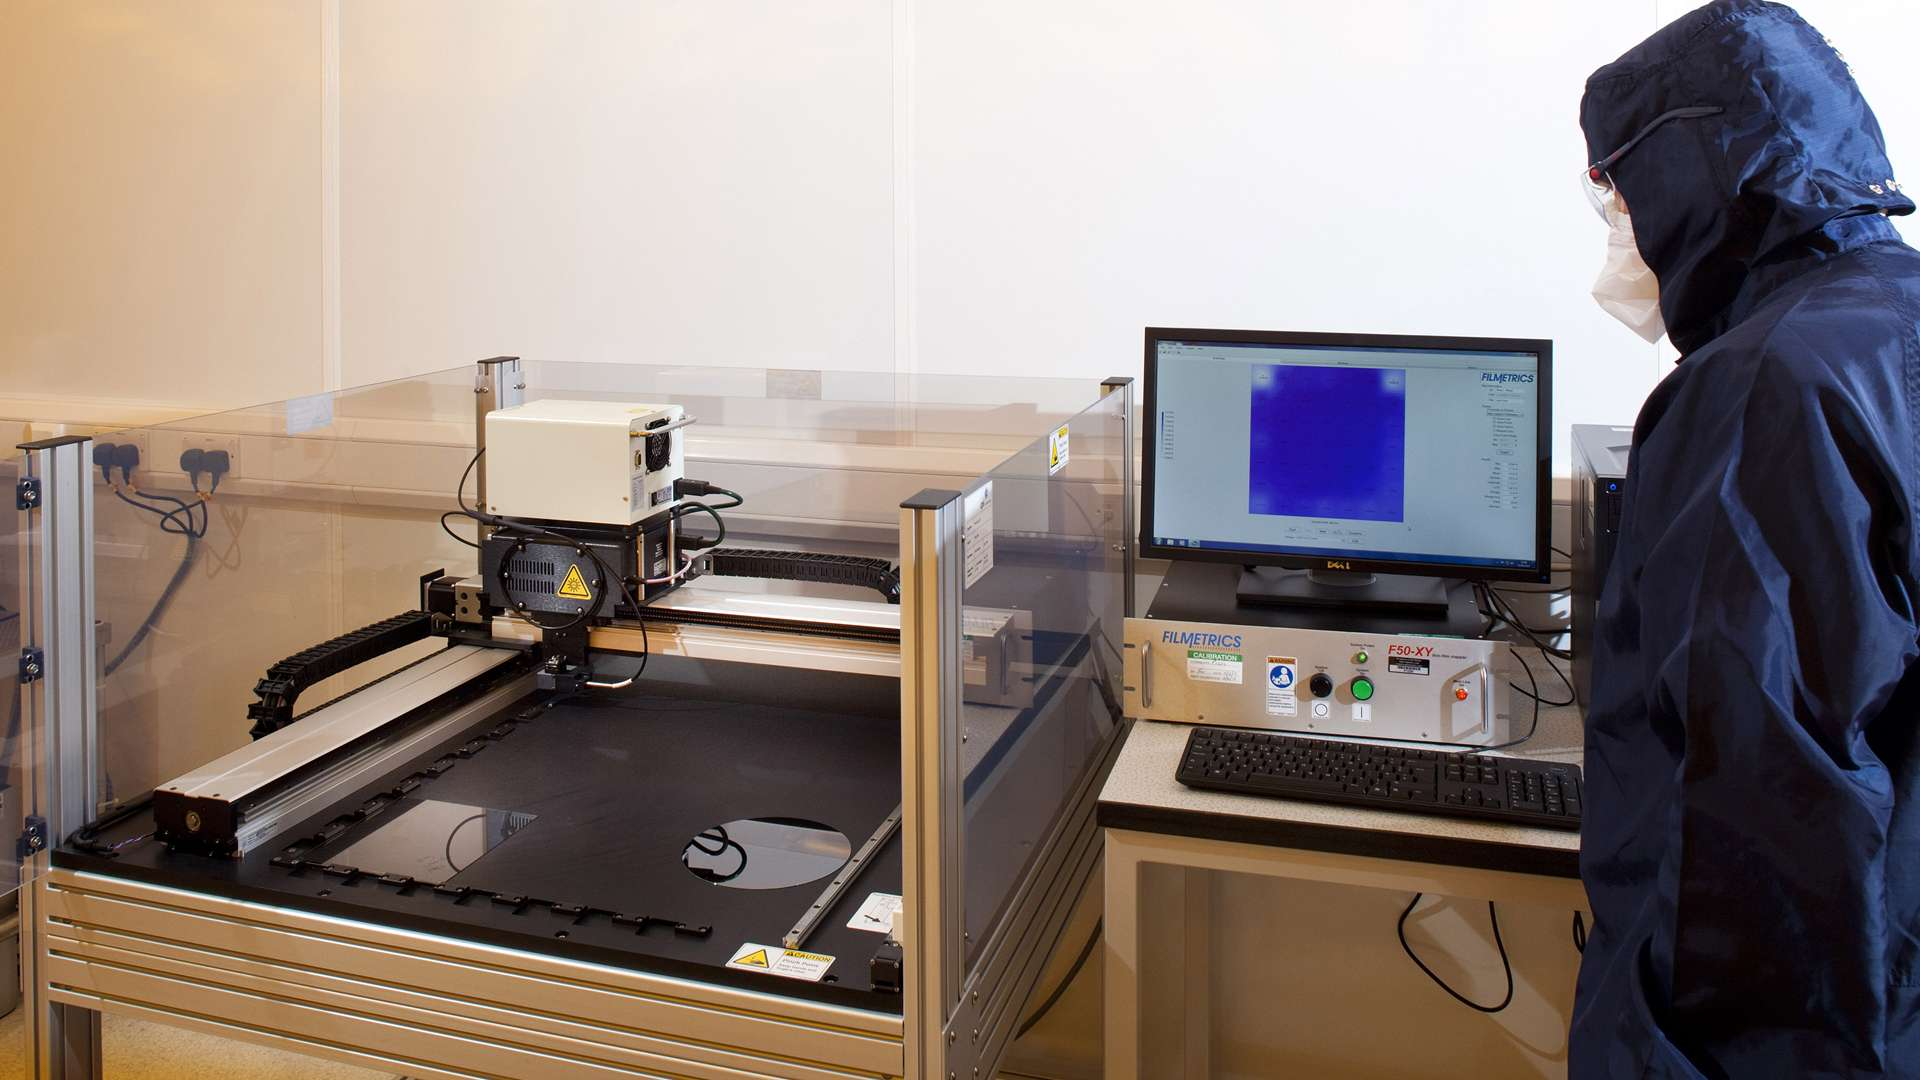 A photo of a printed circuit being analysed at CPI